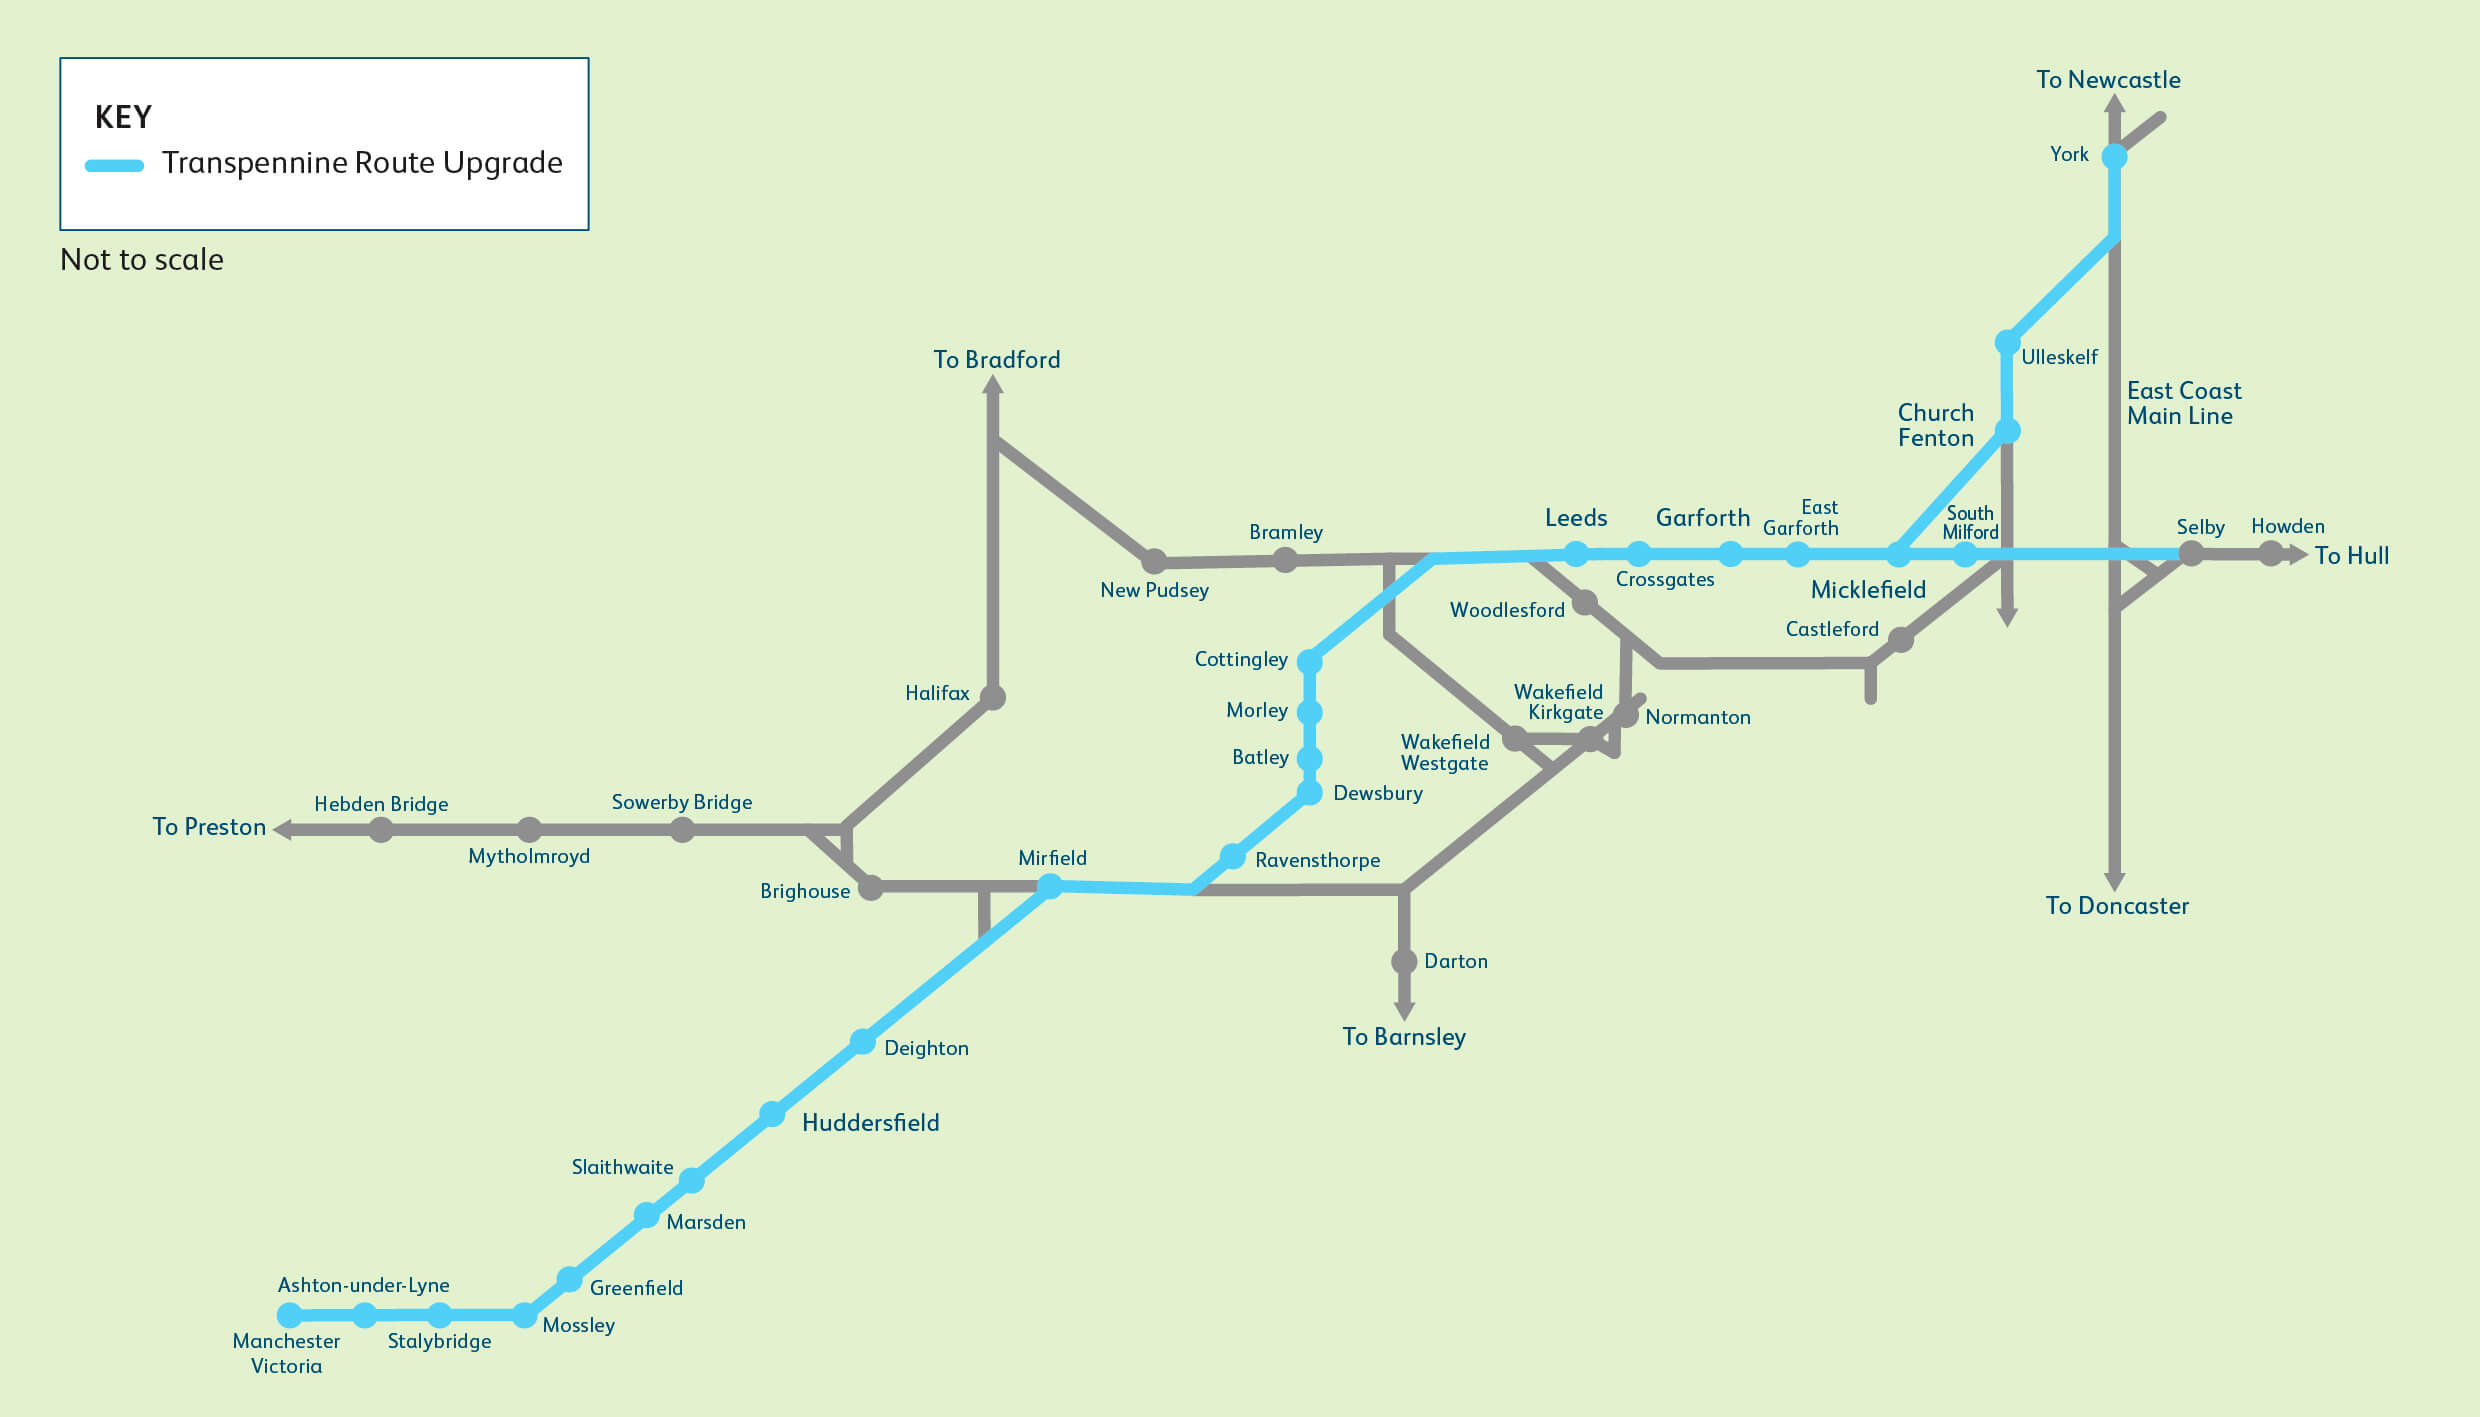 Transpennine-route-upgrade-map.jpg